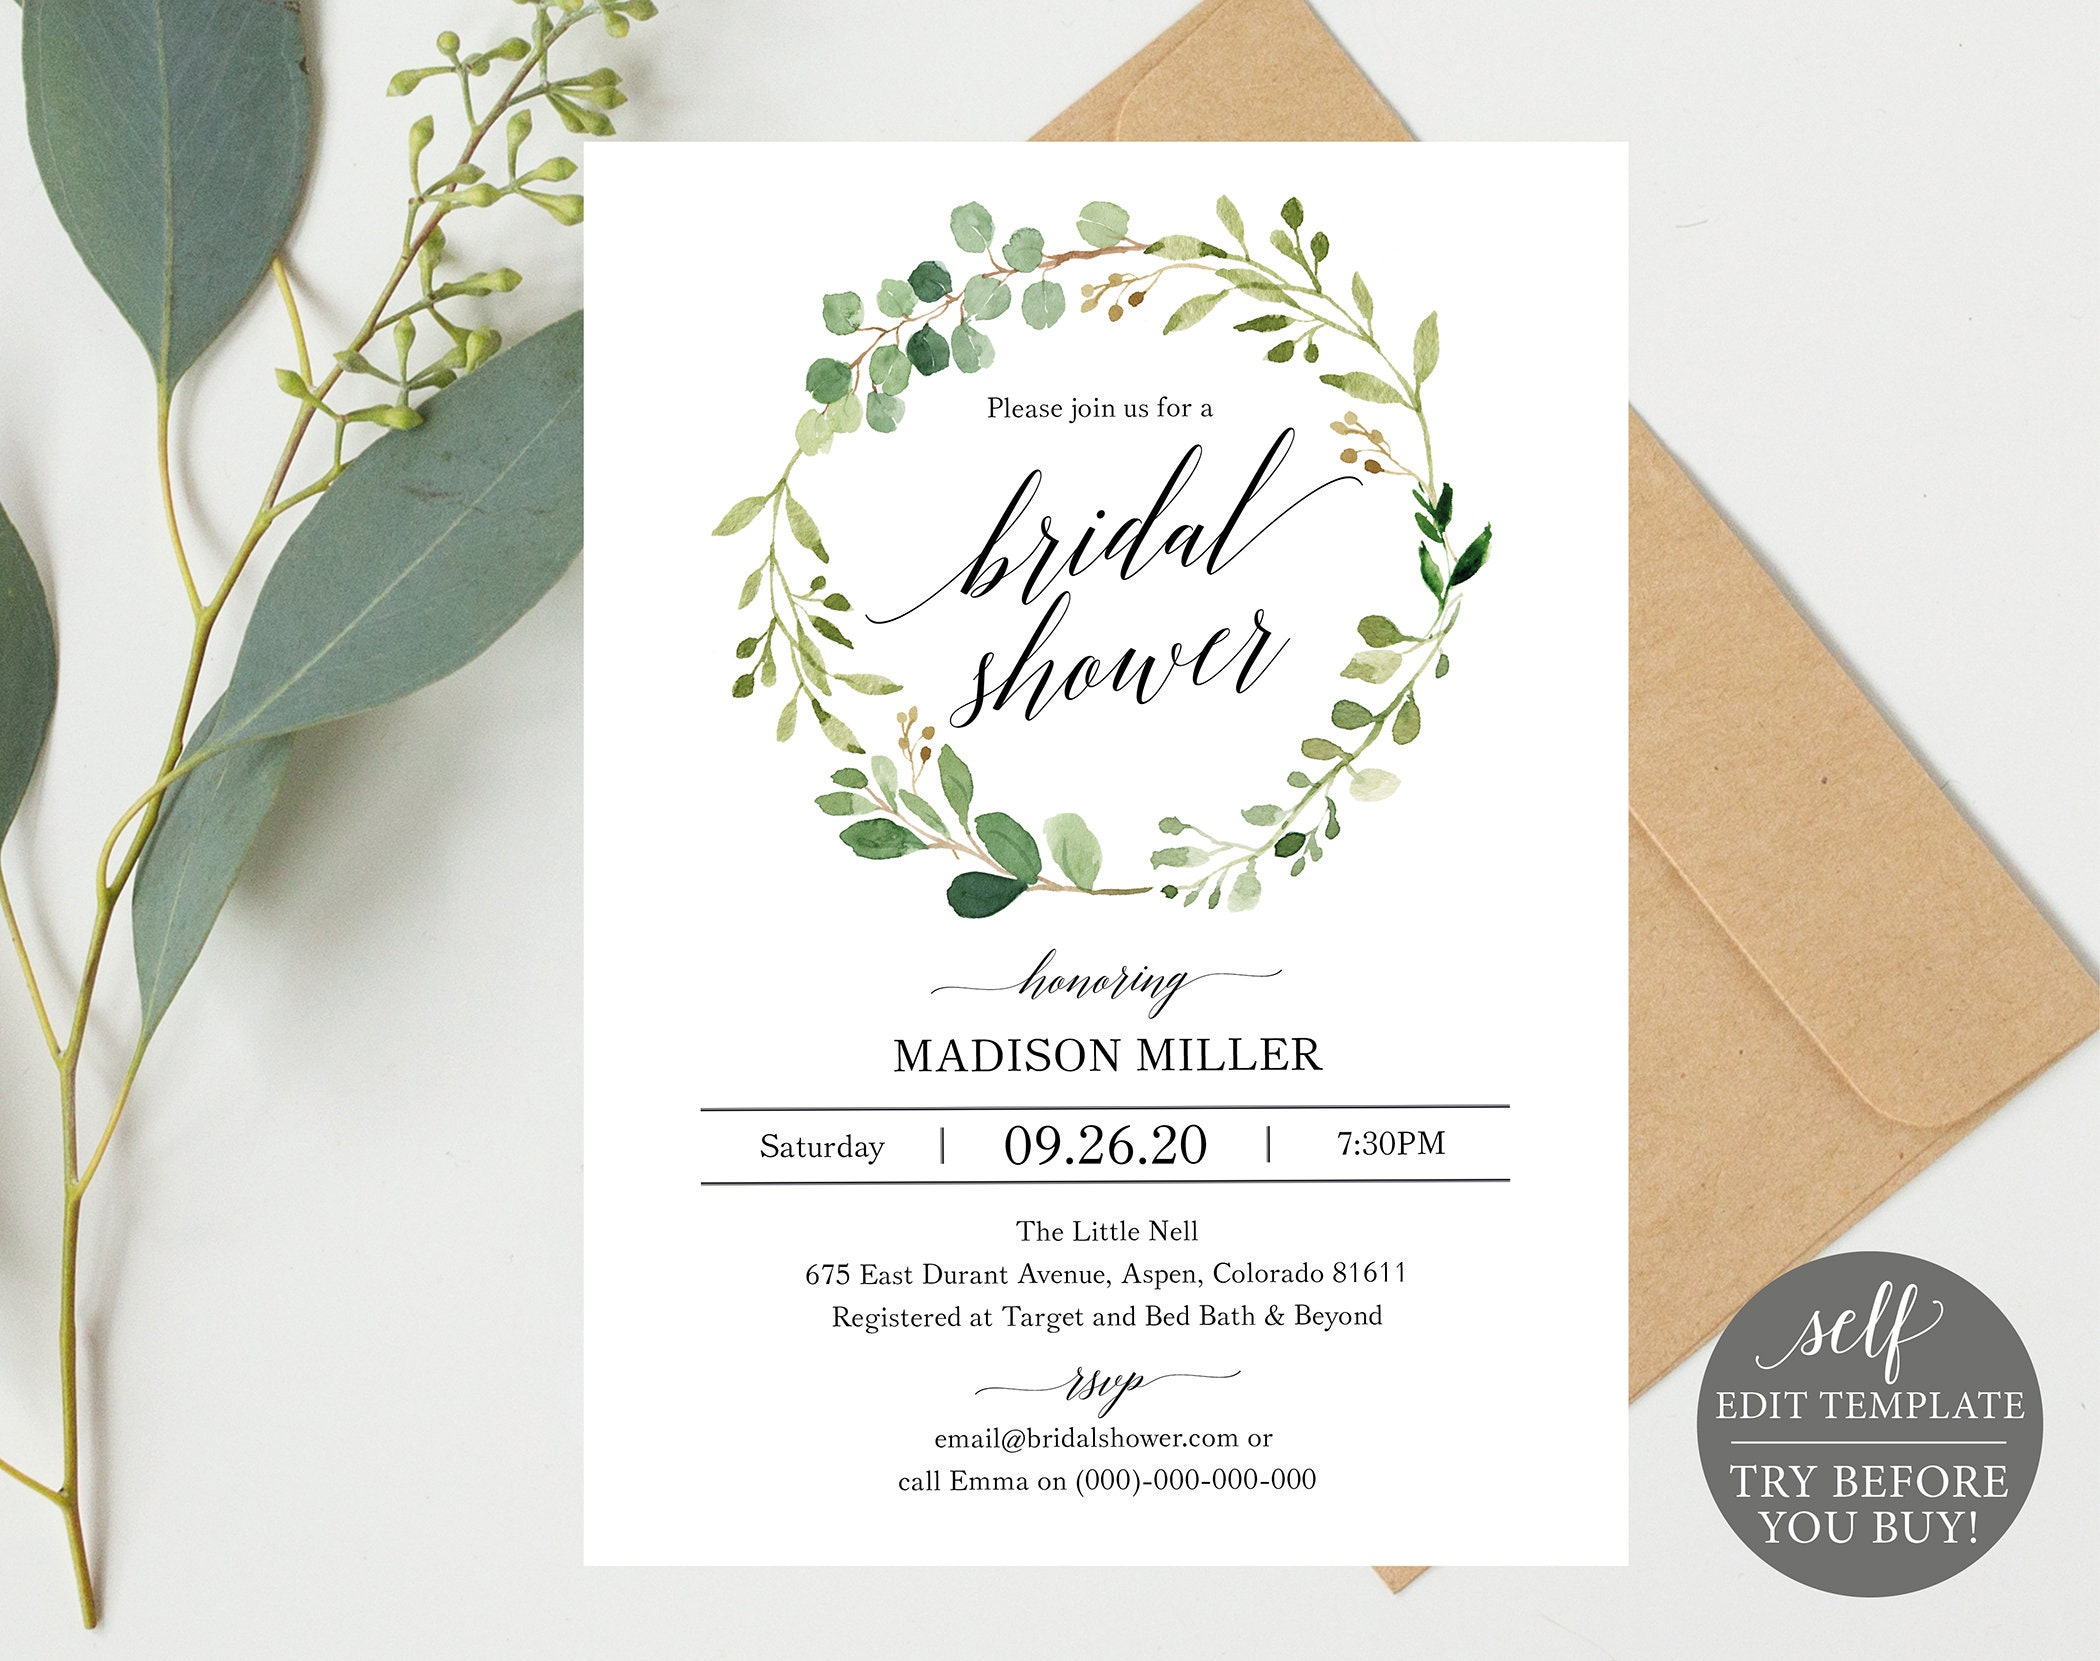 photograph relating to Printable Bridal Shower Invitations known as Greenery Wedding day Bridal Shower Invitation Template, Printable Bridal Shower Invite, Editable Wedding day Shower, Prompt Obtain